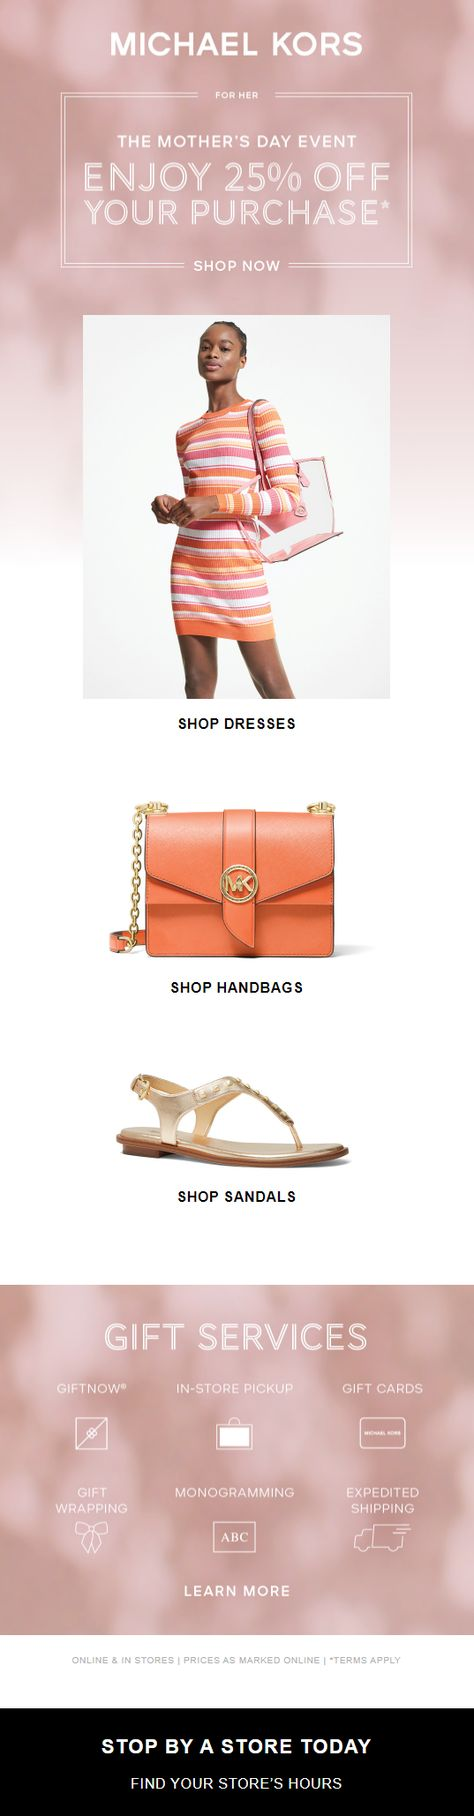 Michael Kors UK: Designer handbags, clothing, menswear, watches, shoes, and more